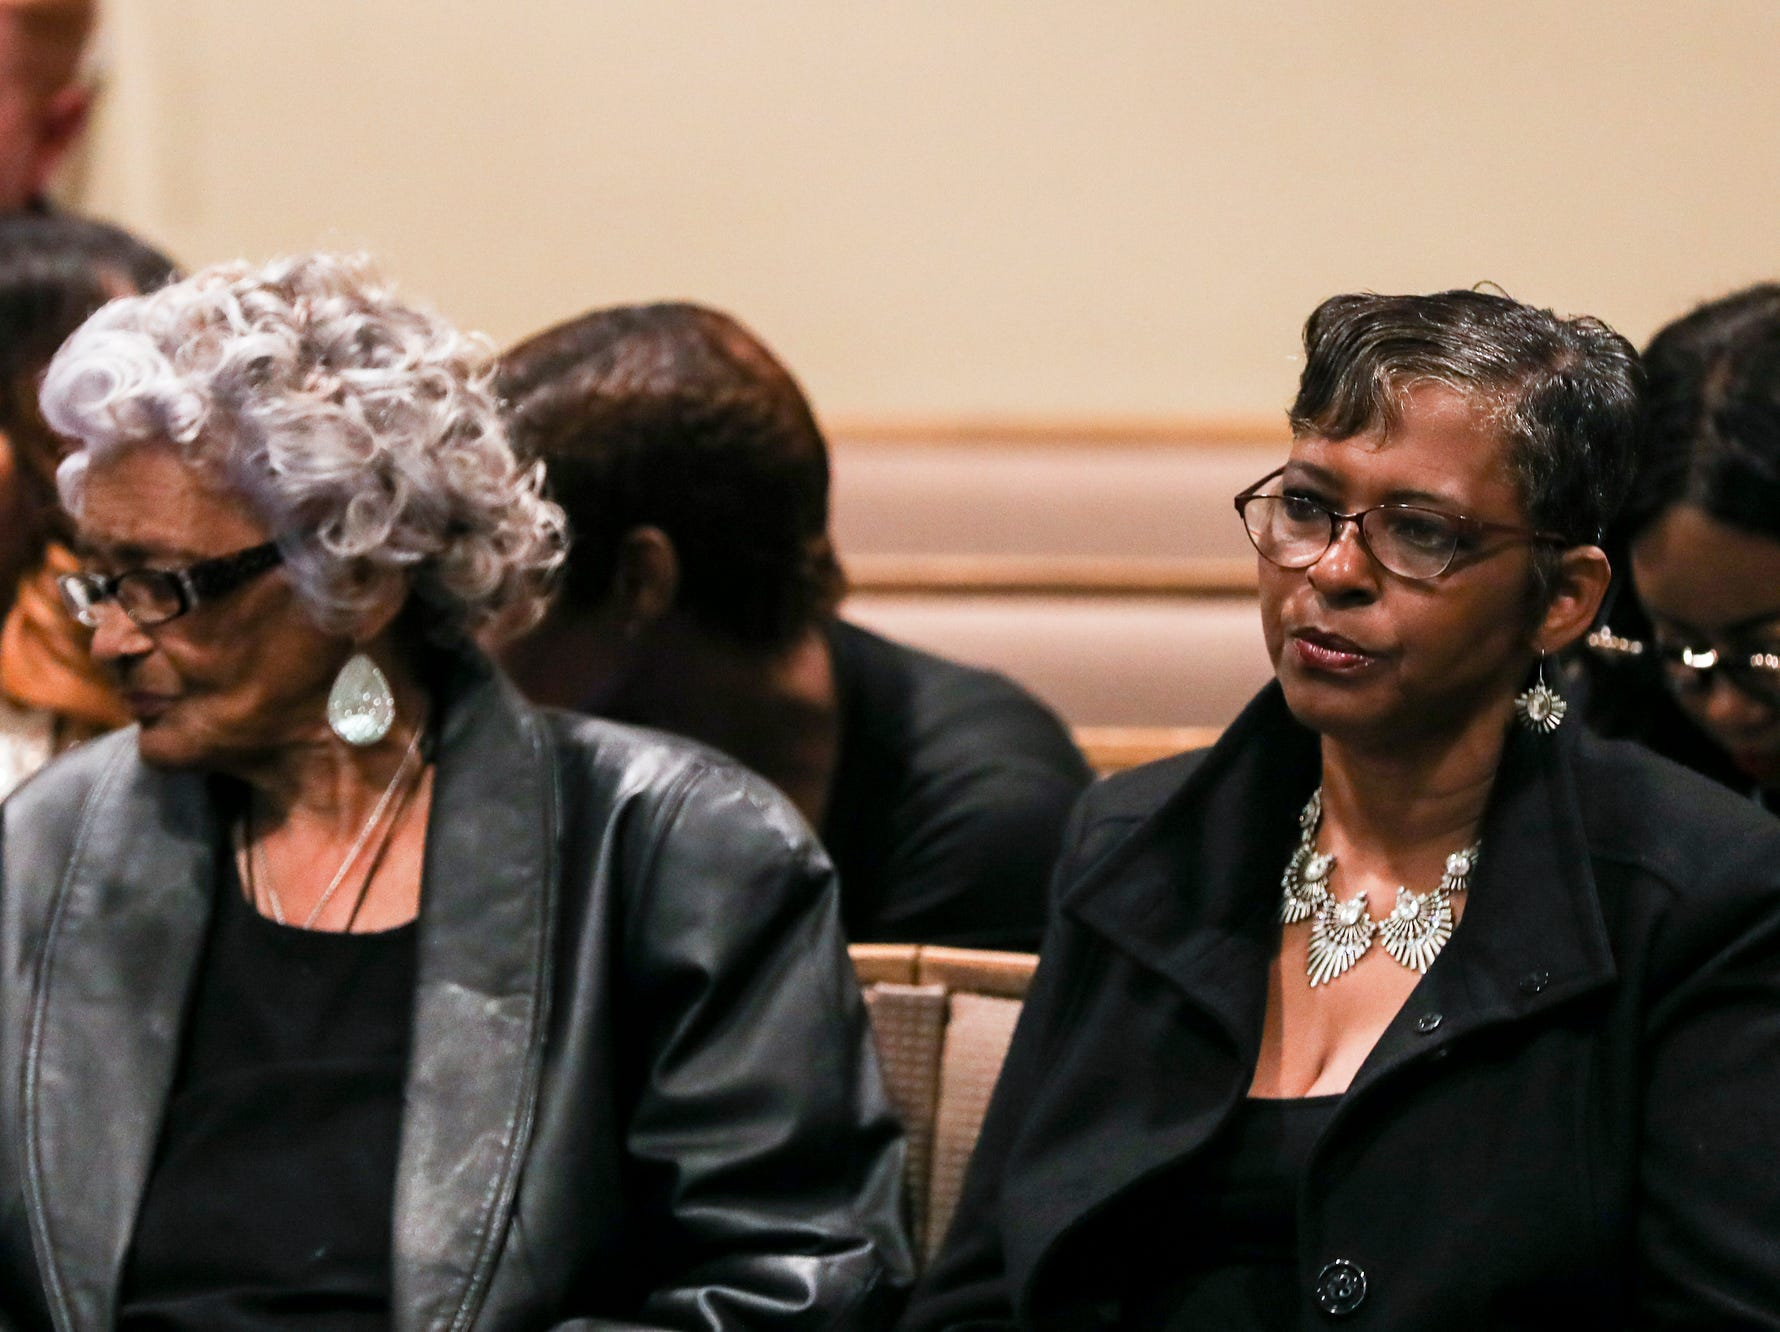 November 29 2018 - Louise Vassar, grandmother of Lorenzen Wright, left, and Deborah Marion, Lorenzen Wright's mother, are seen in Judge Lee Coffee's courtroom on Thursday. A trial date of Sept. 16, 2019 was set on Thursday before Criminal Court Judge Lee Coffee. Sherra Wright and Billy Ray Turner are charged with first-degree murder in Lorenzen Wright's July 2010 shooting death.